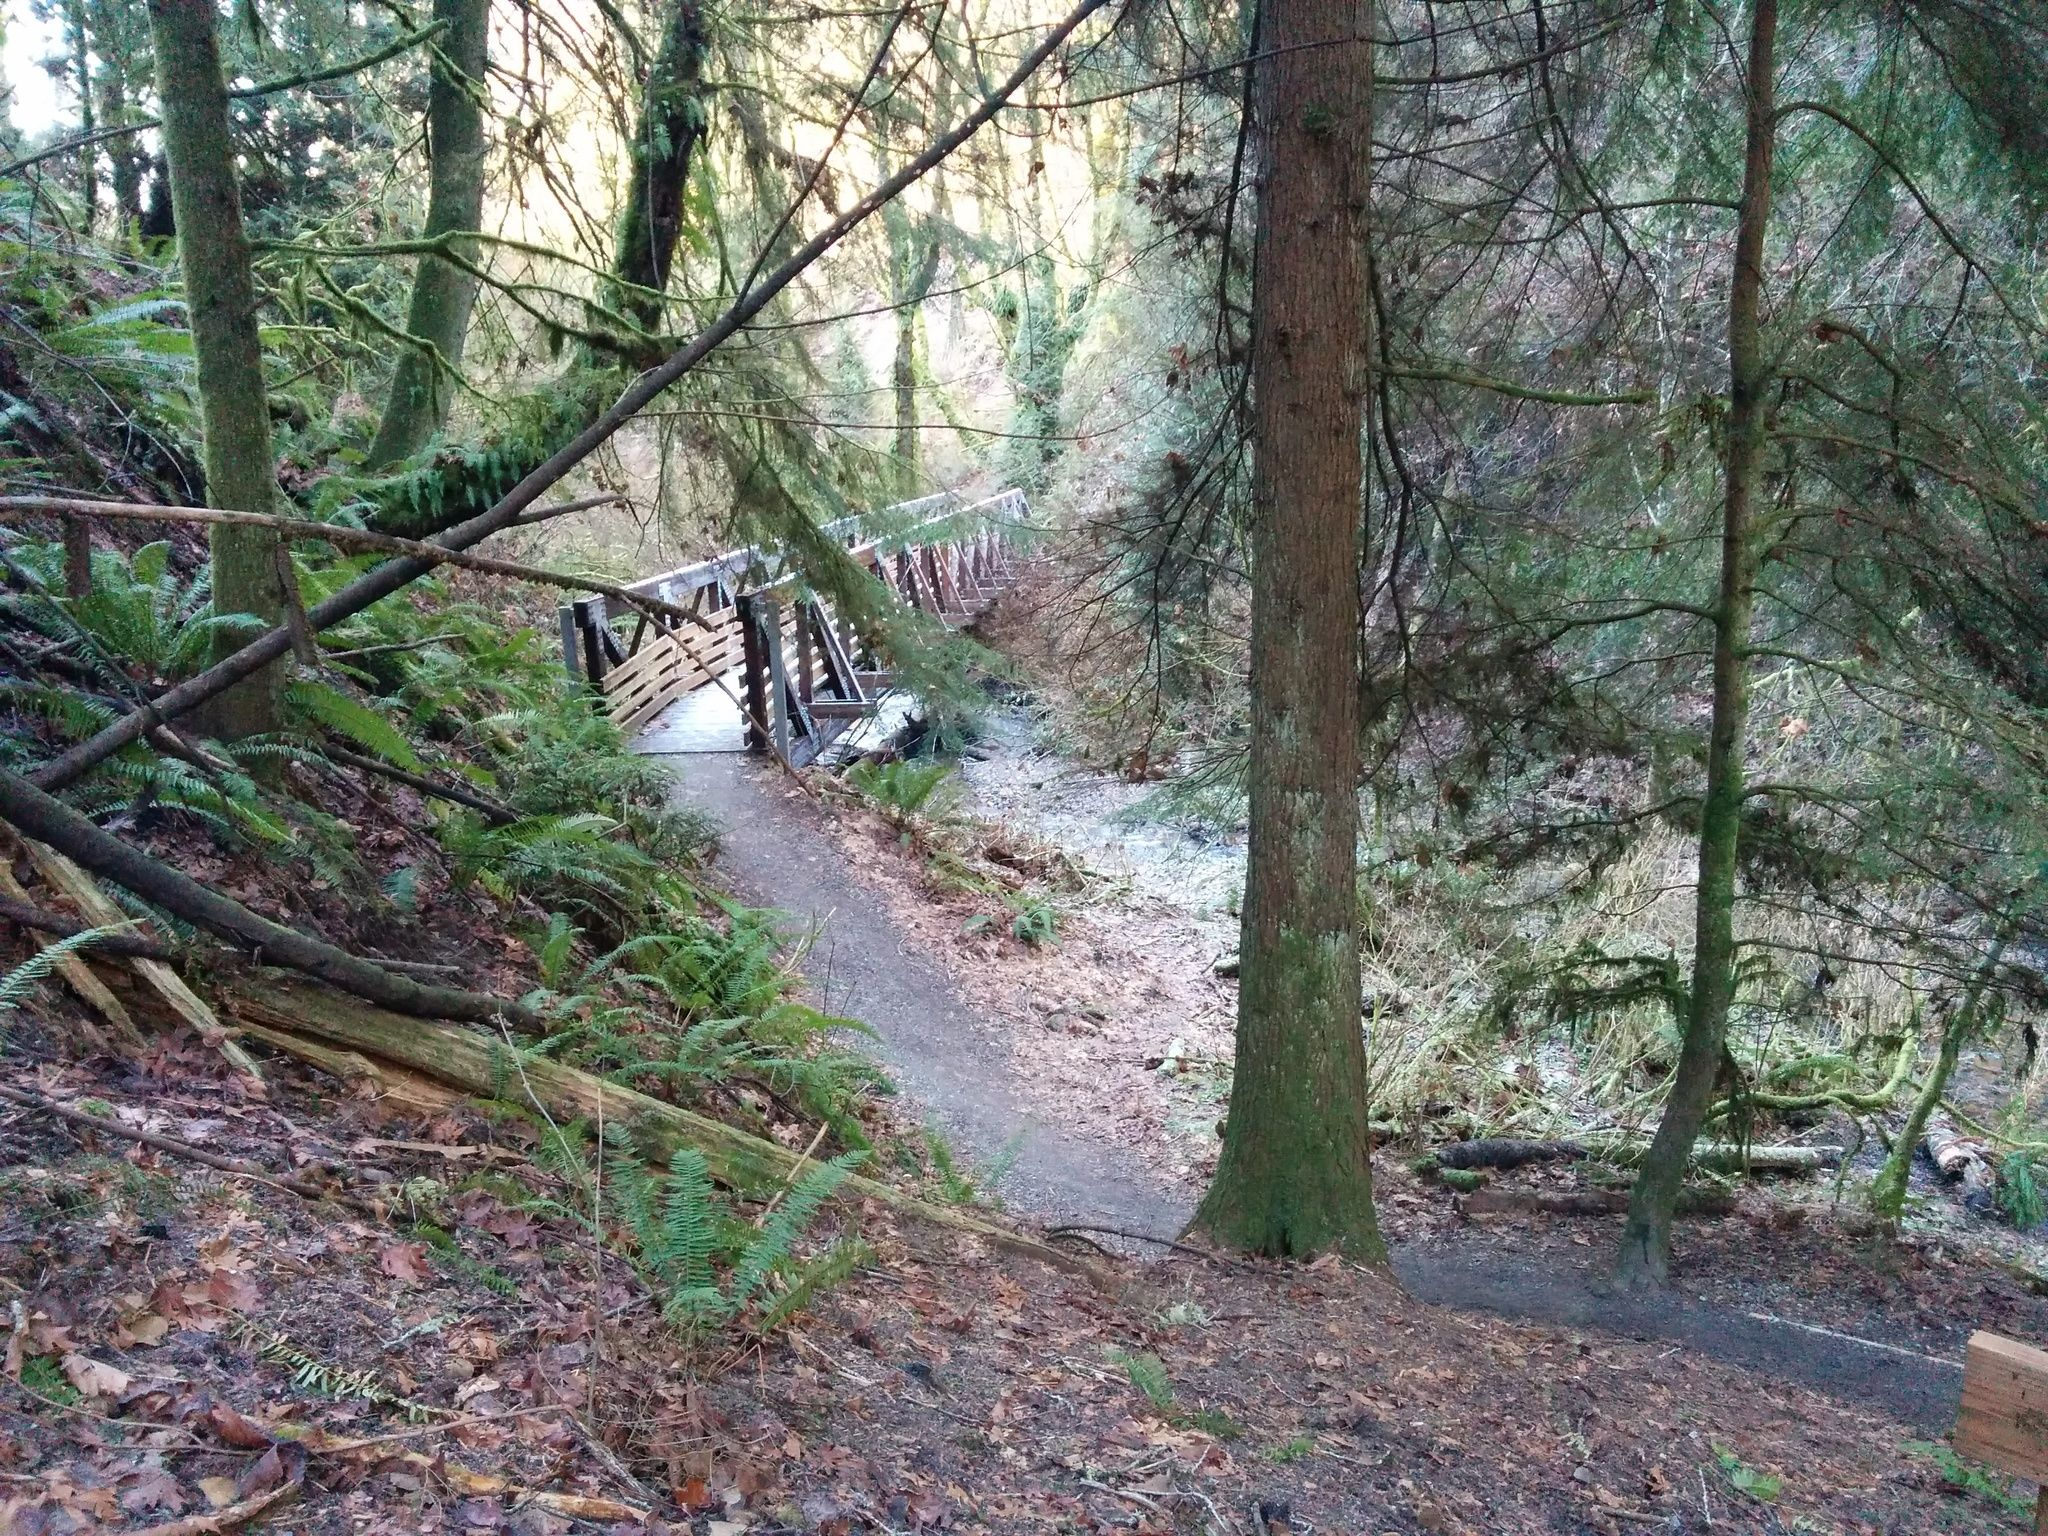 ../images/trails/primrose_loop//00 Bridge across Coal Creek.jpg